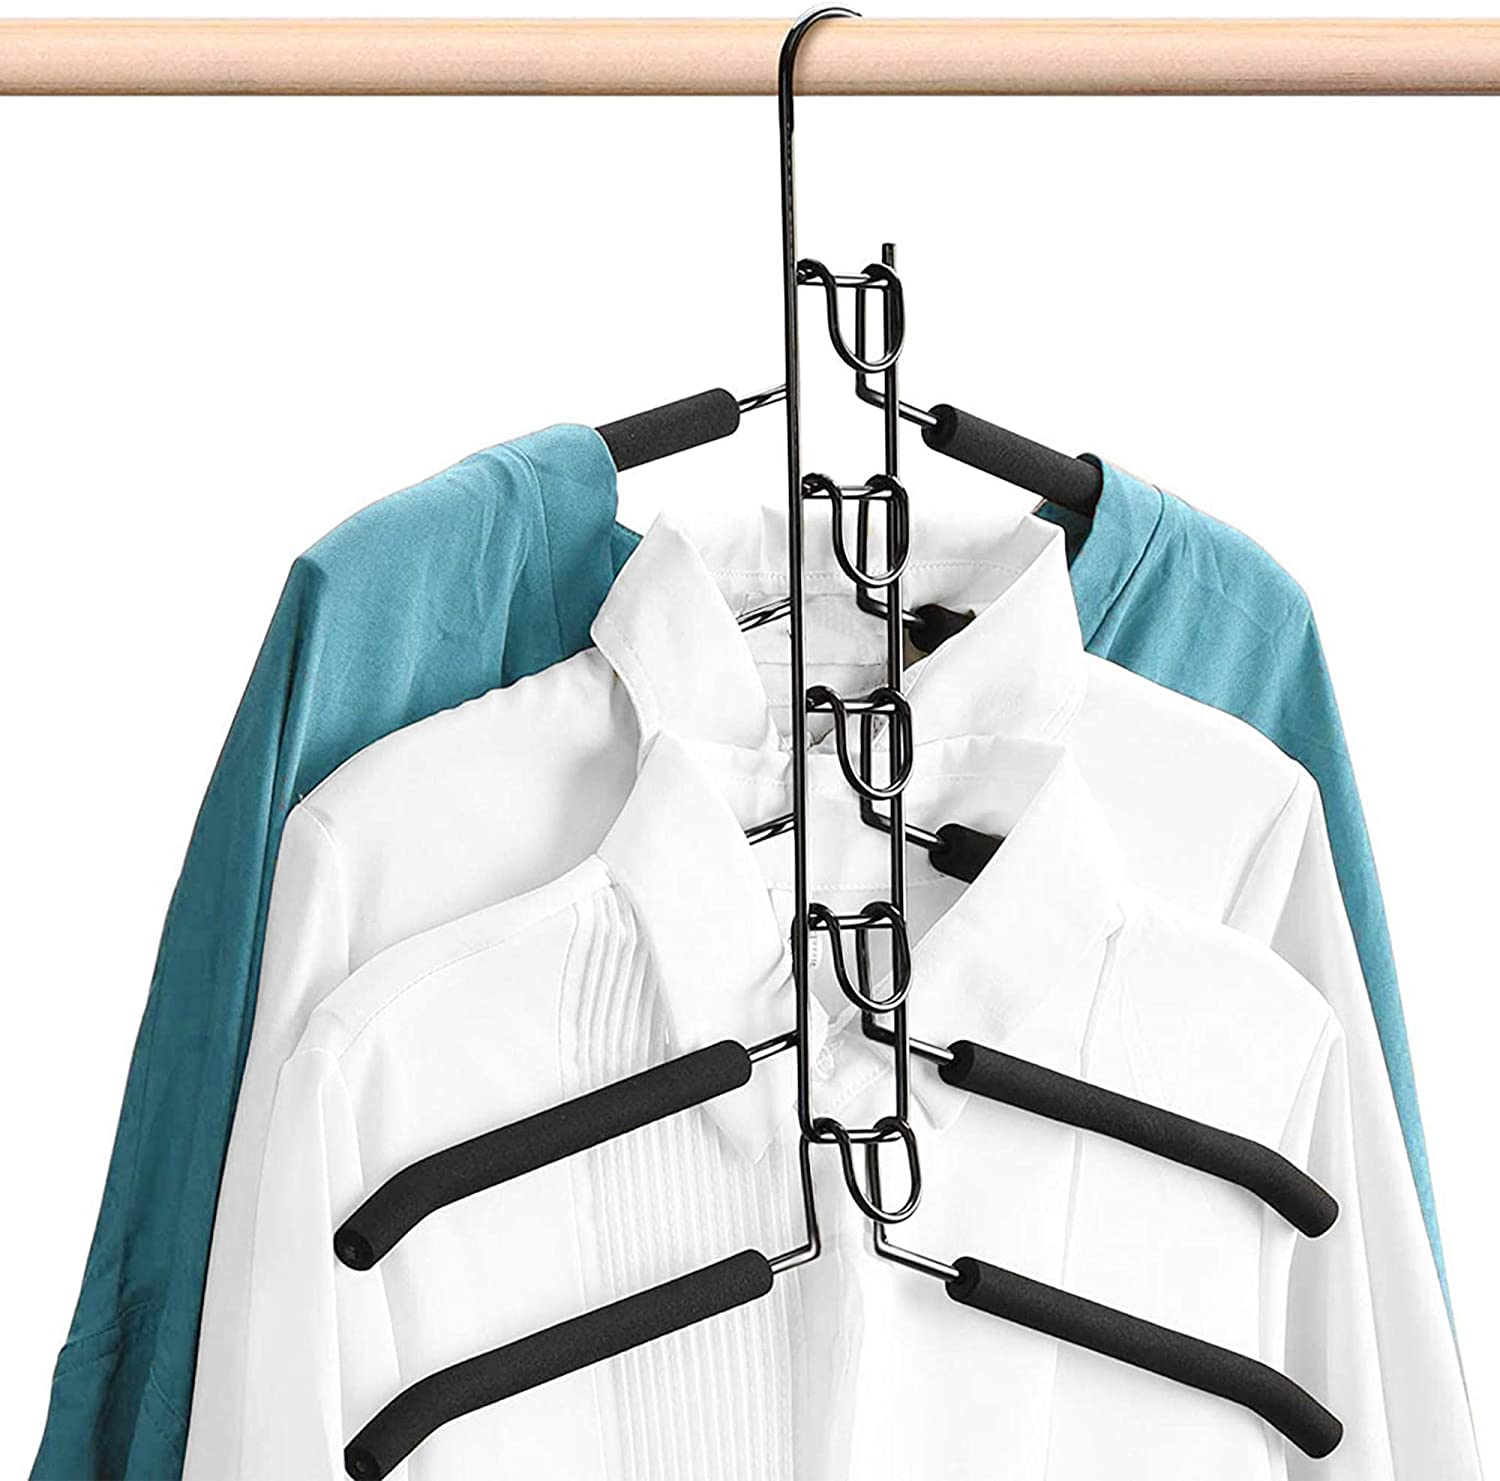 lowest price AHEYHOM Hangers Space Saving 5 in Non-Slip 1 Magic Indianapolis Mall Metal Clothes